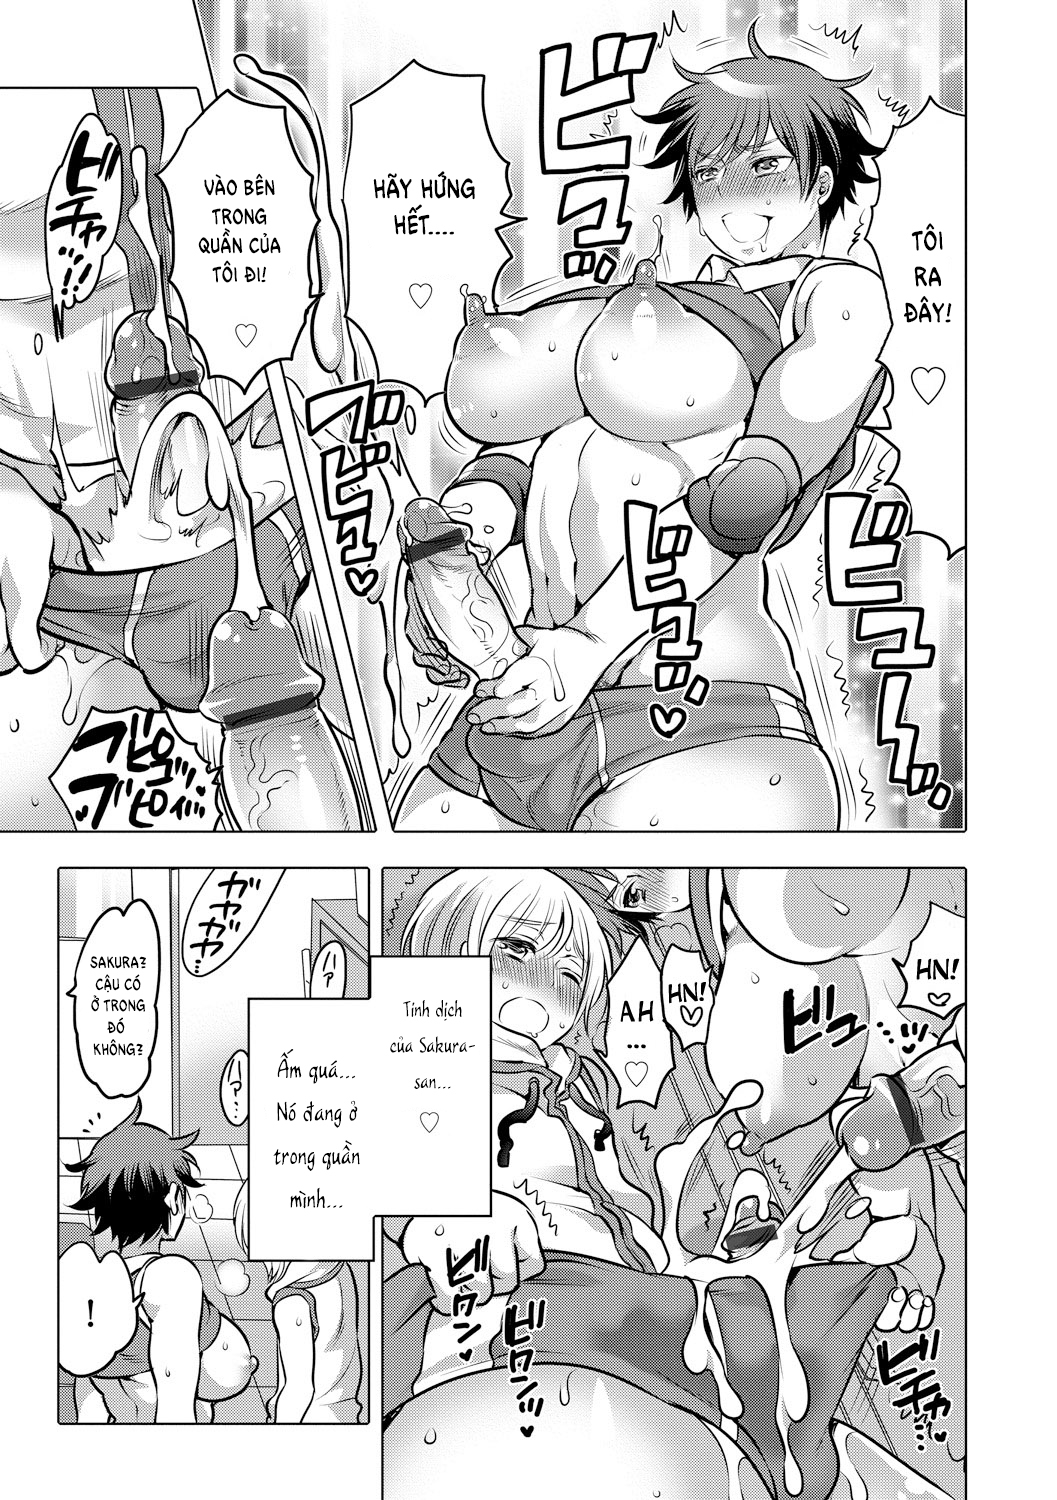 HentaiVN.net - Ảnh 10 - Futanari Volley - Oneshot